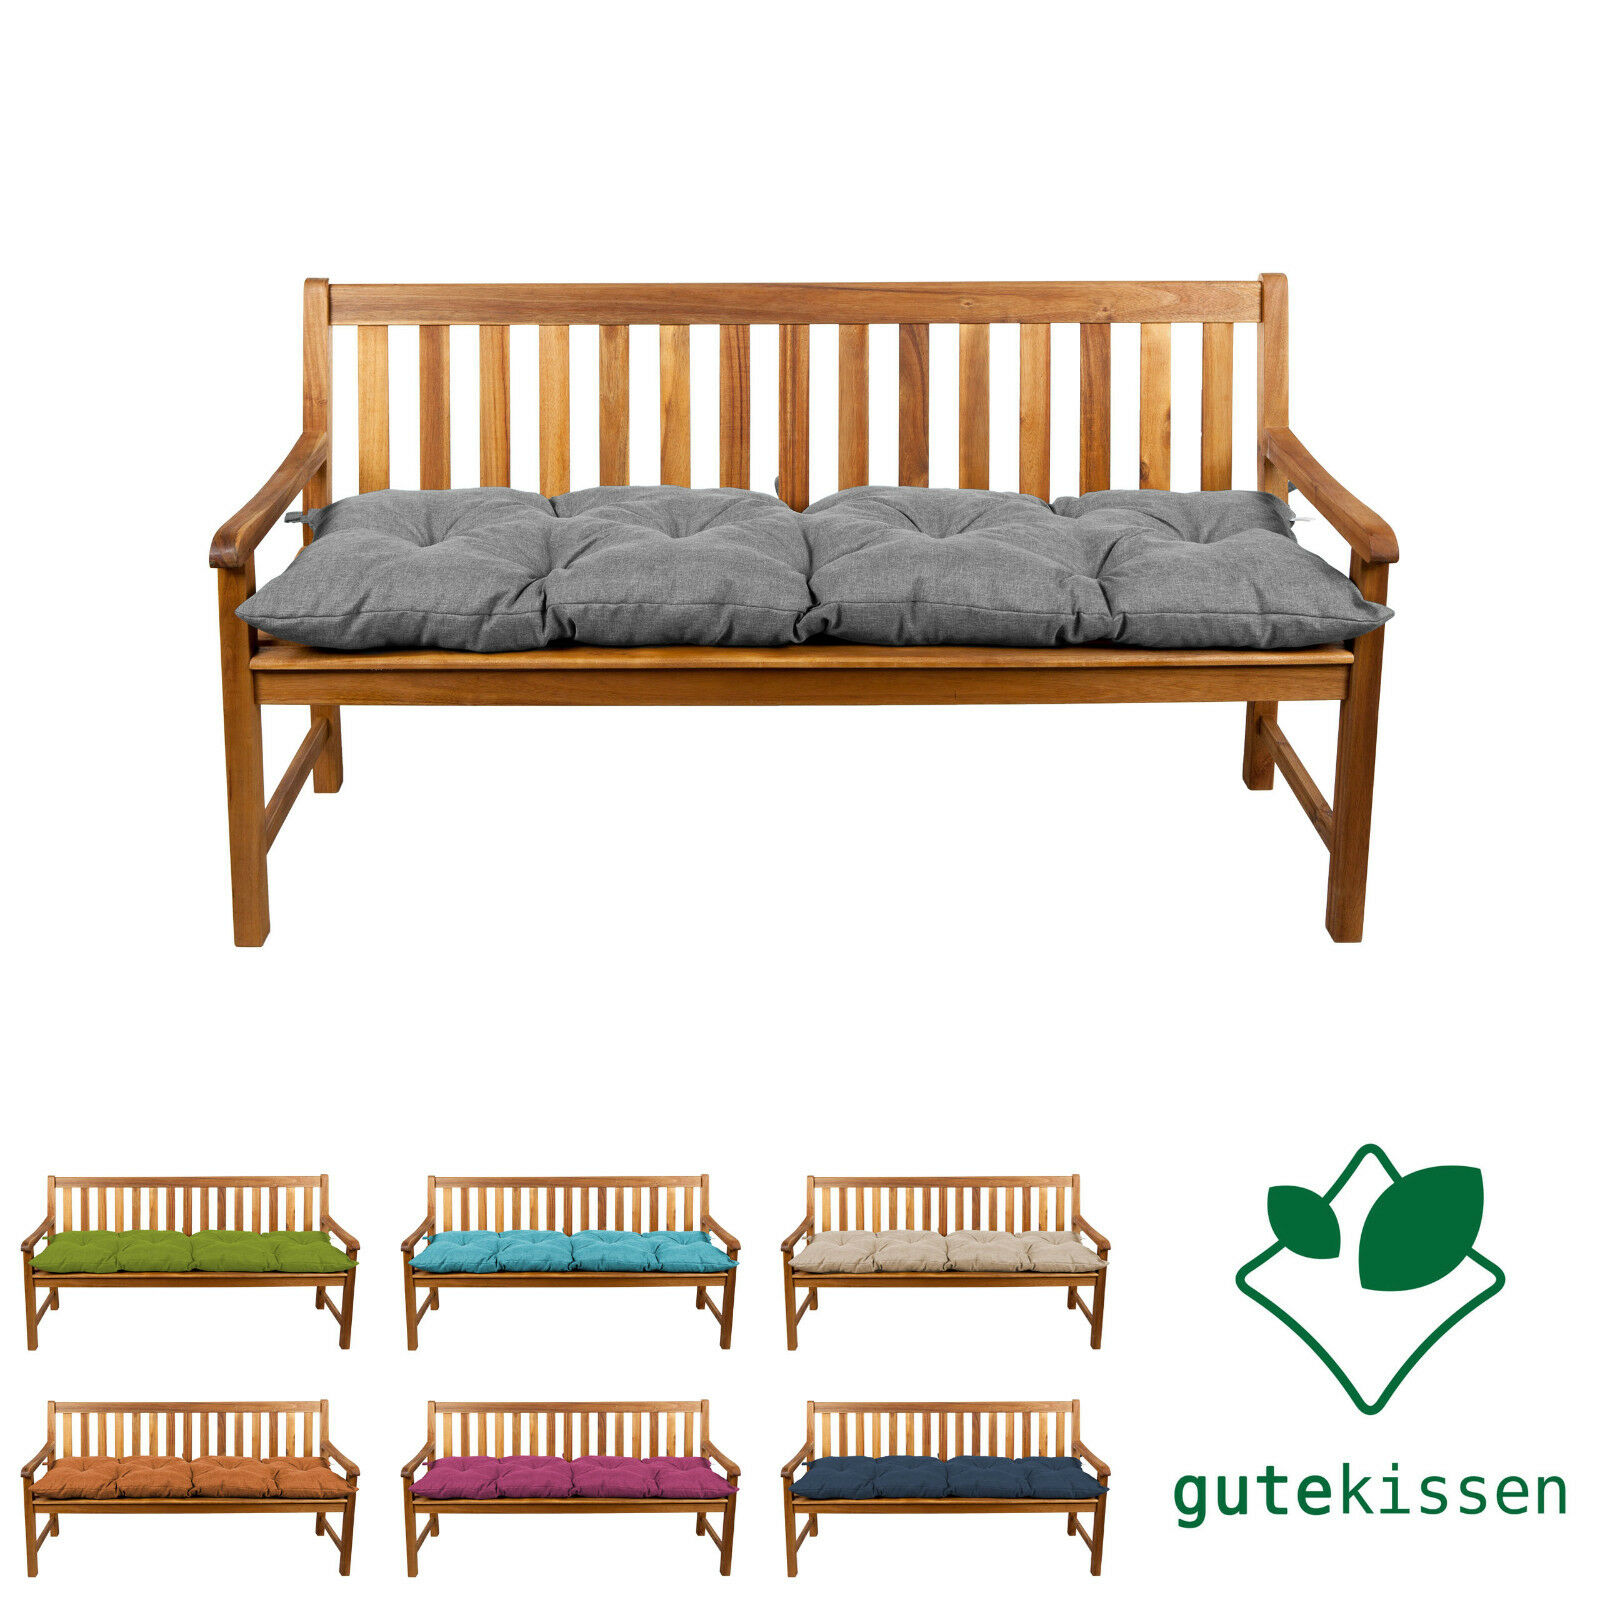 bankauflage stuhlkissen auflage hollywoodschaukel bankkissen sitzkissen garten eur 10 00. Black Bedroom Furniture Sets. Home Design Ideas